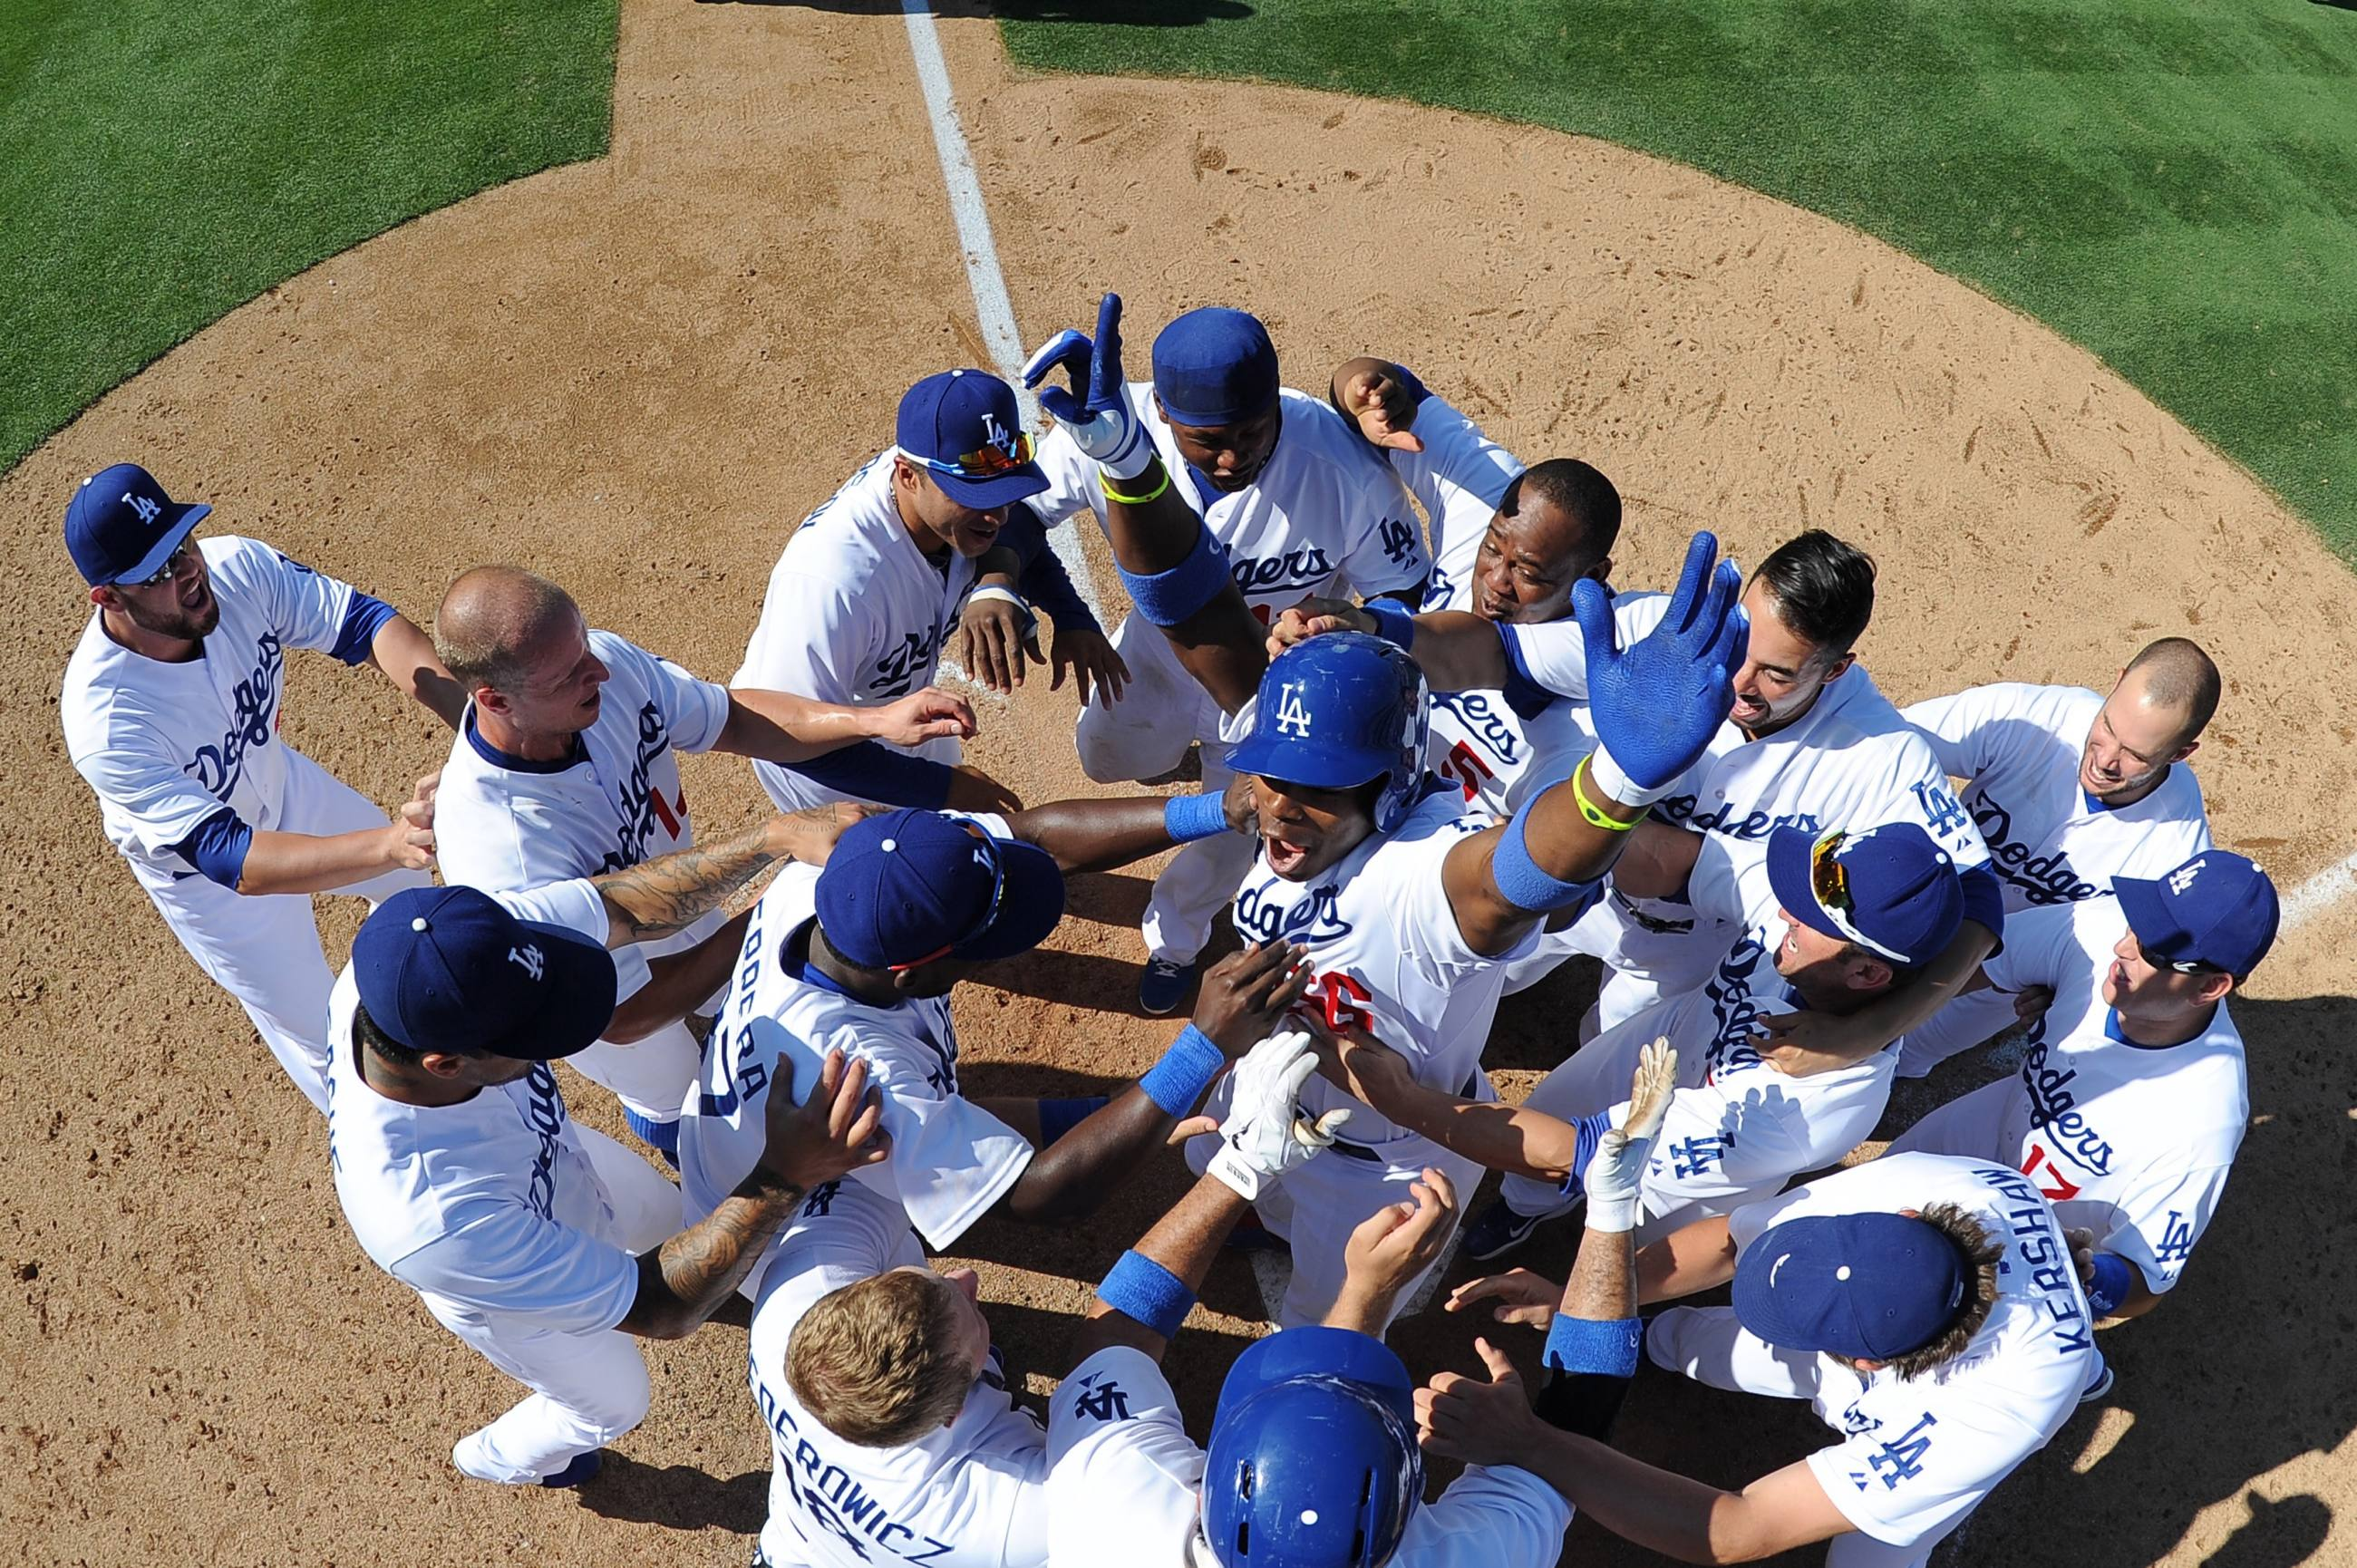 The Dodgers celebrate Yasiel Puig's walk-off home run at Dodger Stadium in 2013